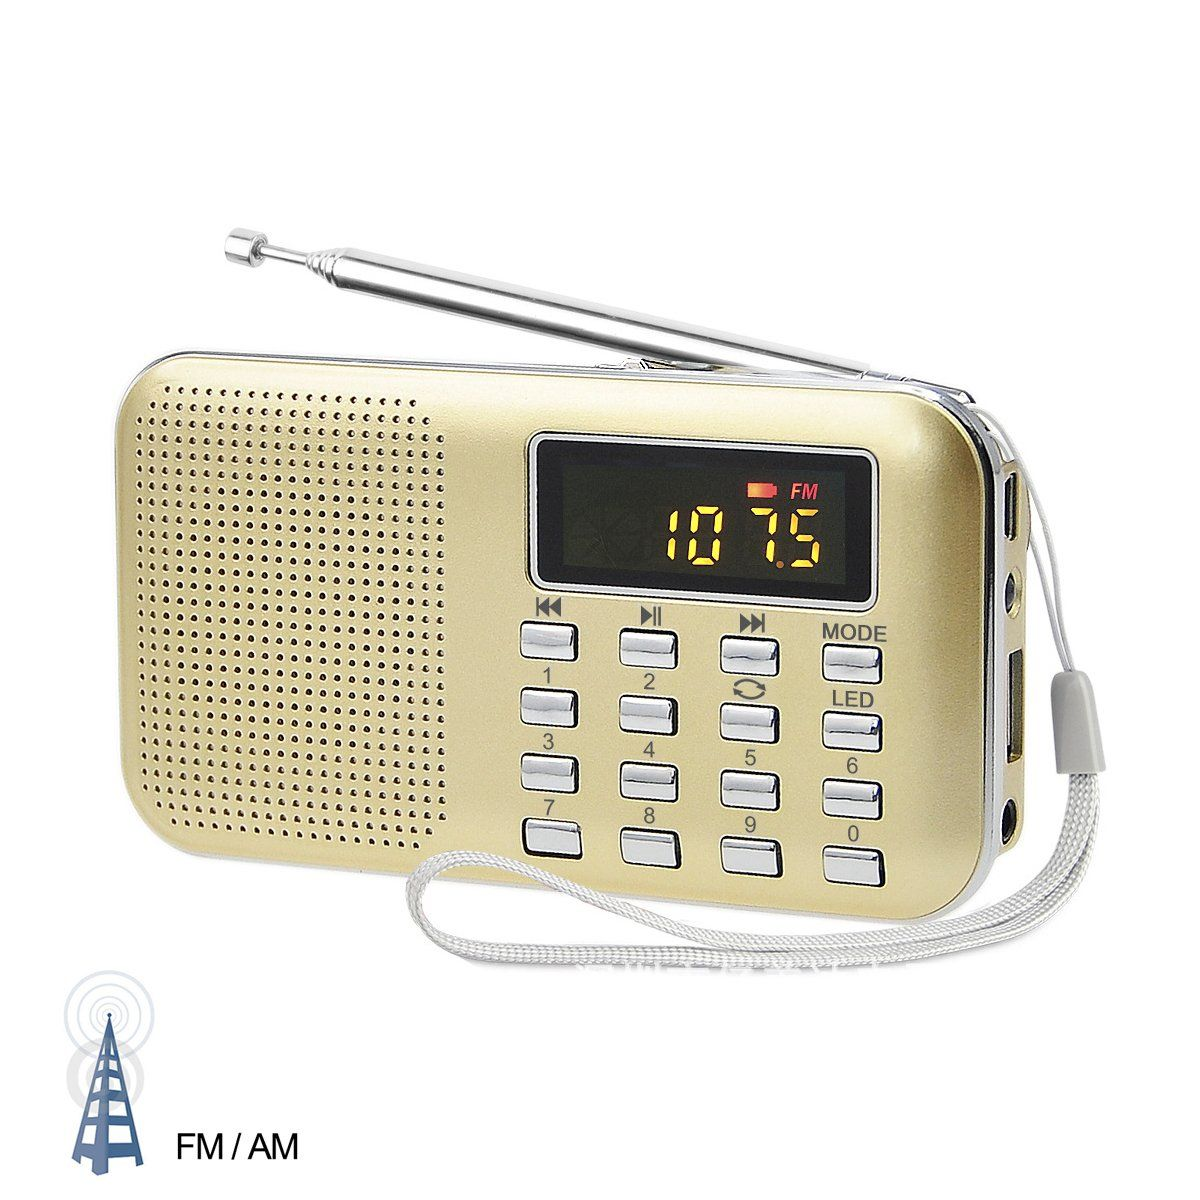 LEFON Mini Digital AM FM Radio Media Speaker MP3 Music Player Support TF Card / USB Disk with LED Screen Display and Emergency Flashlight Function (Gold-Upgraded)